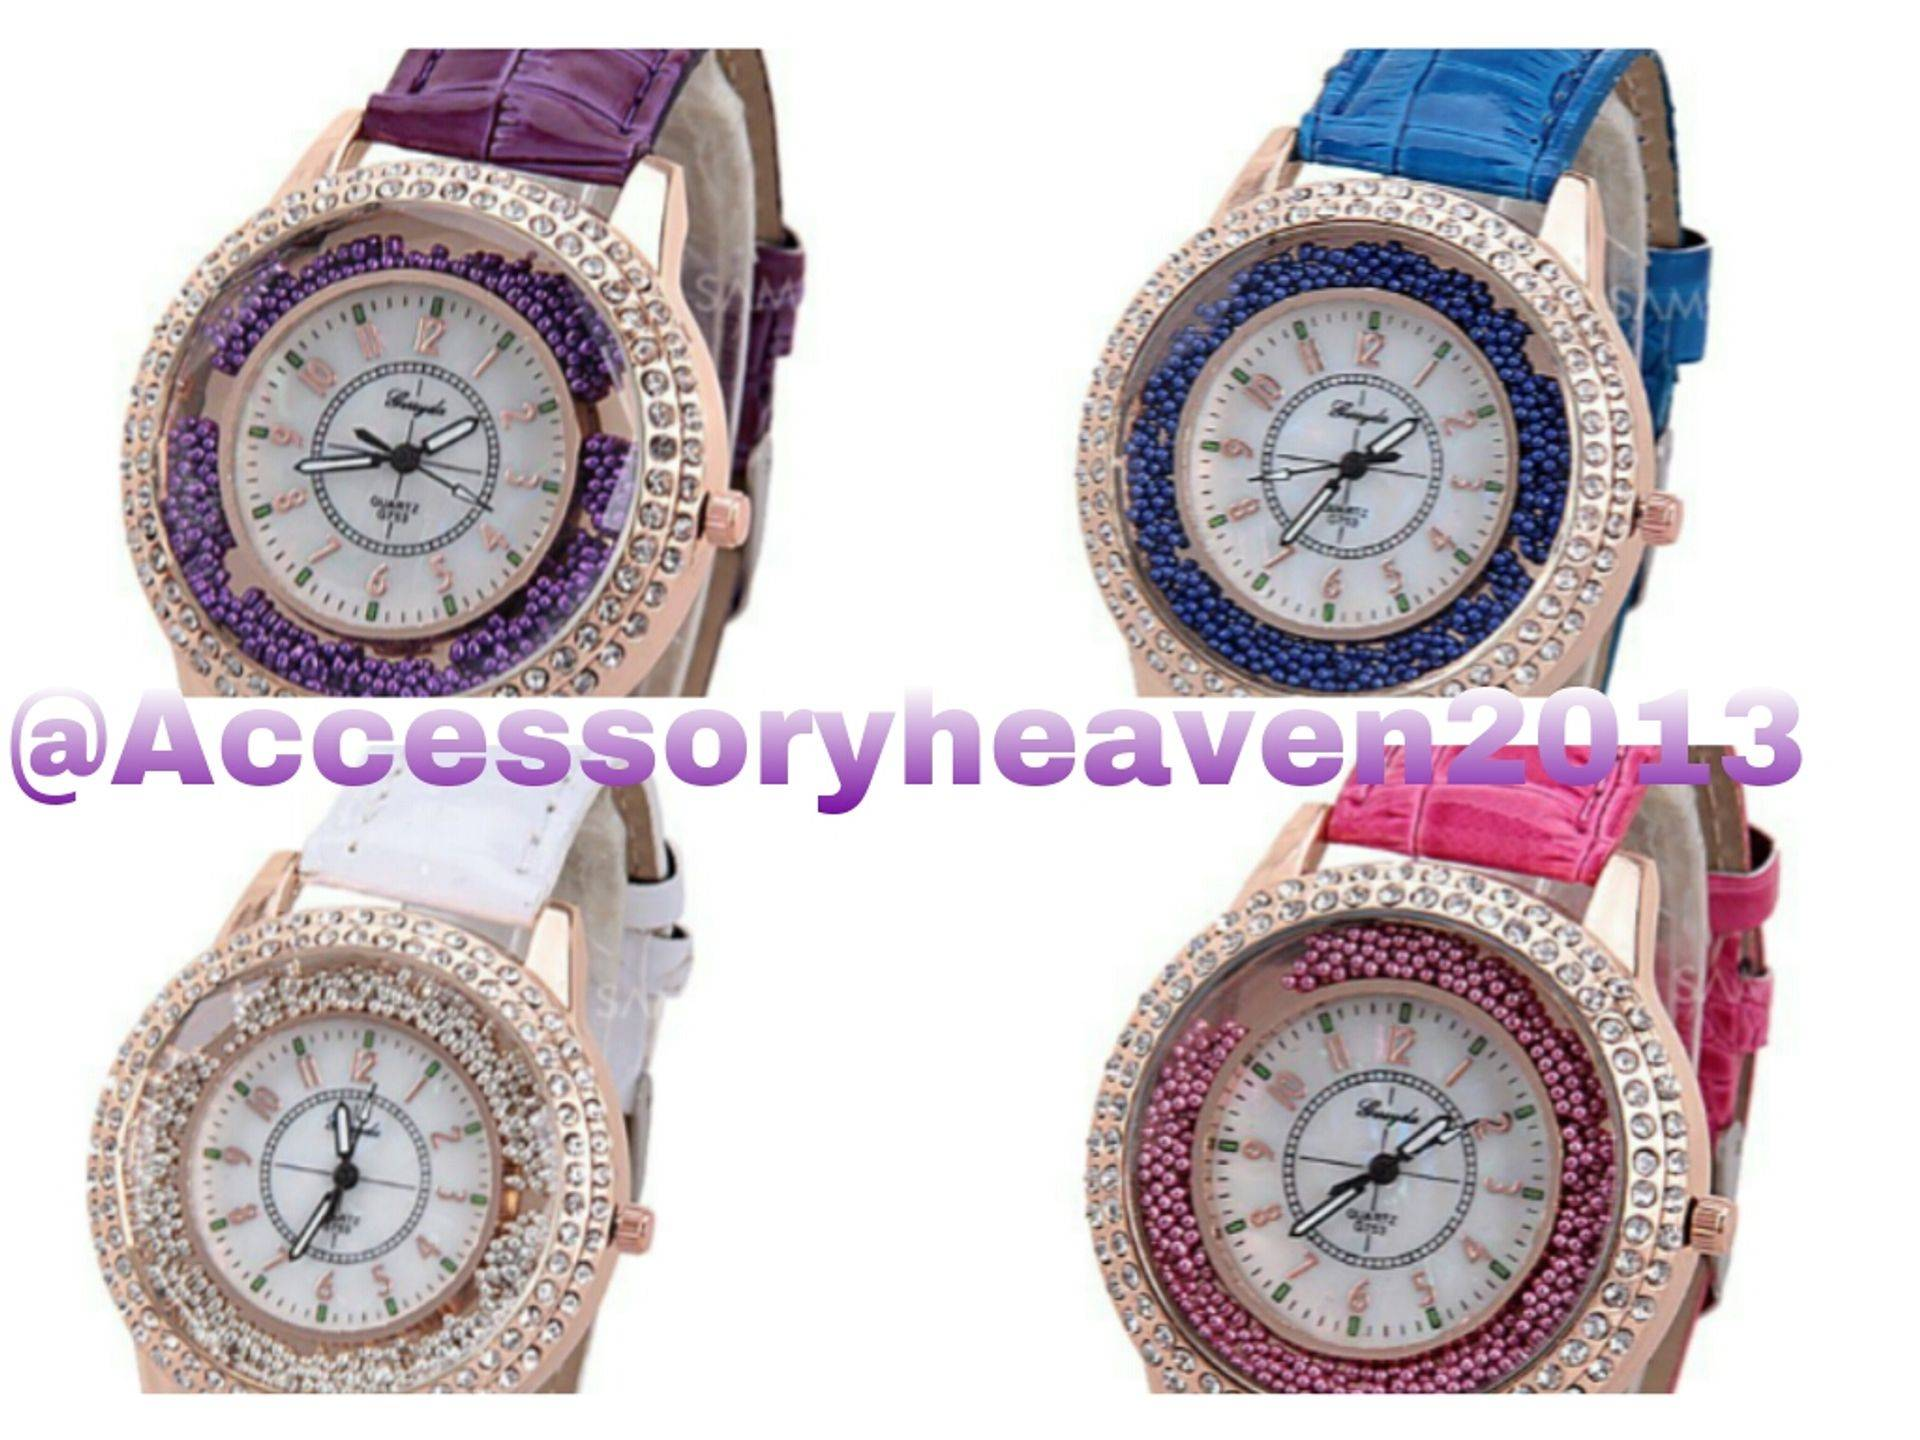 No name colorful watches